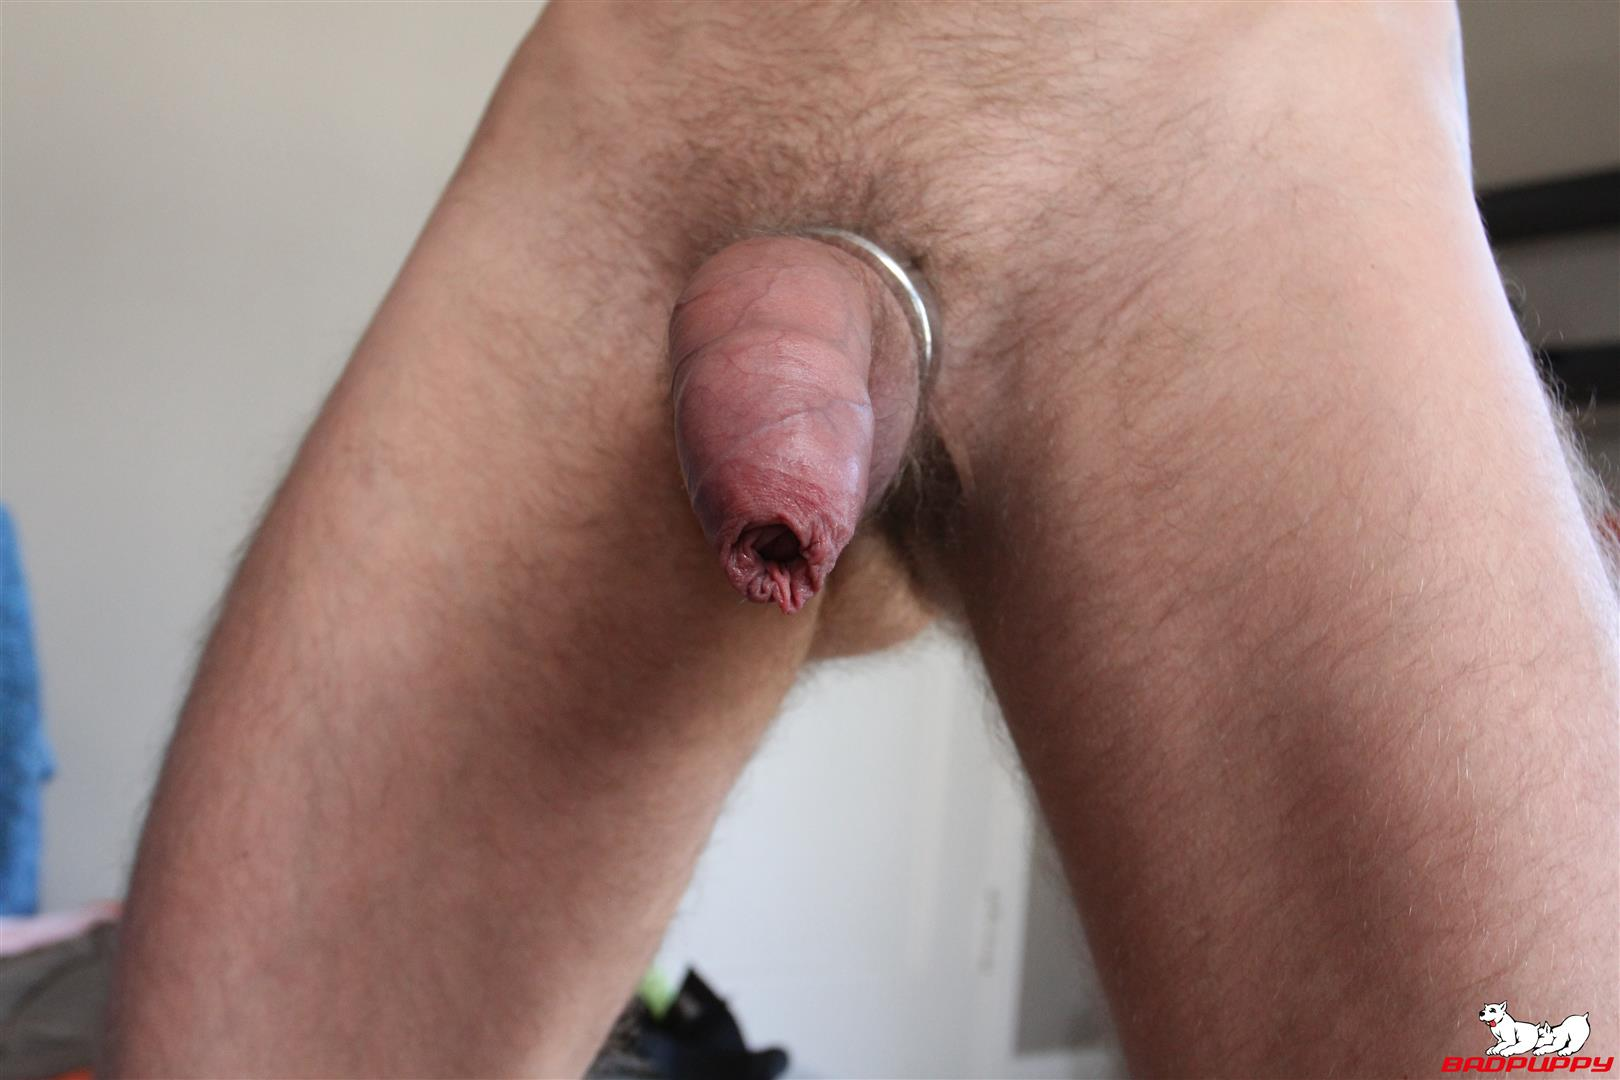 Badpuppy-Manual-Scalco-and-Stephen-Raw-Big-Uncut-Cocks-Fucking-Bareback-10 Getting Bareback Fucked By A Big Thick Uncut Cock